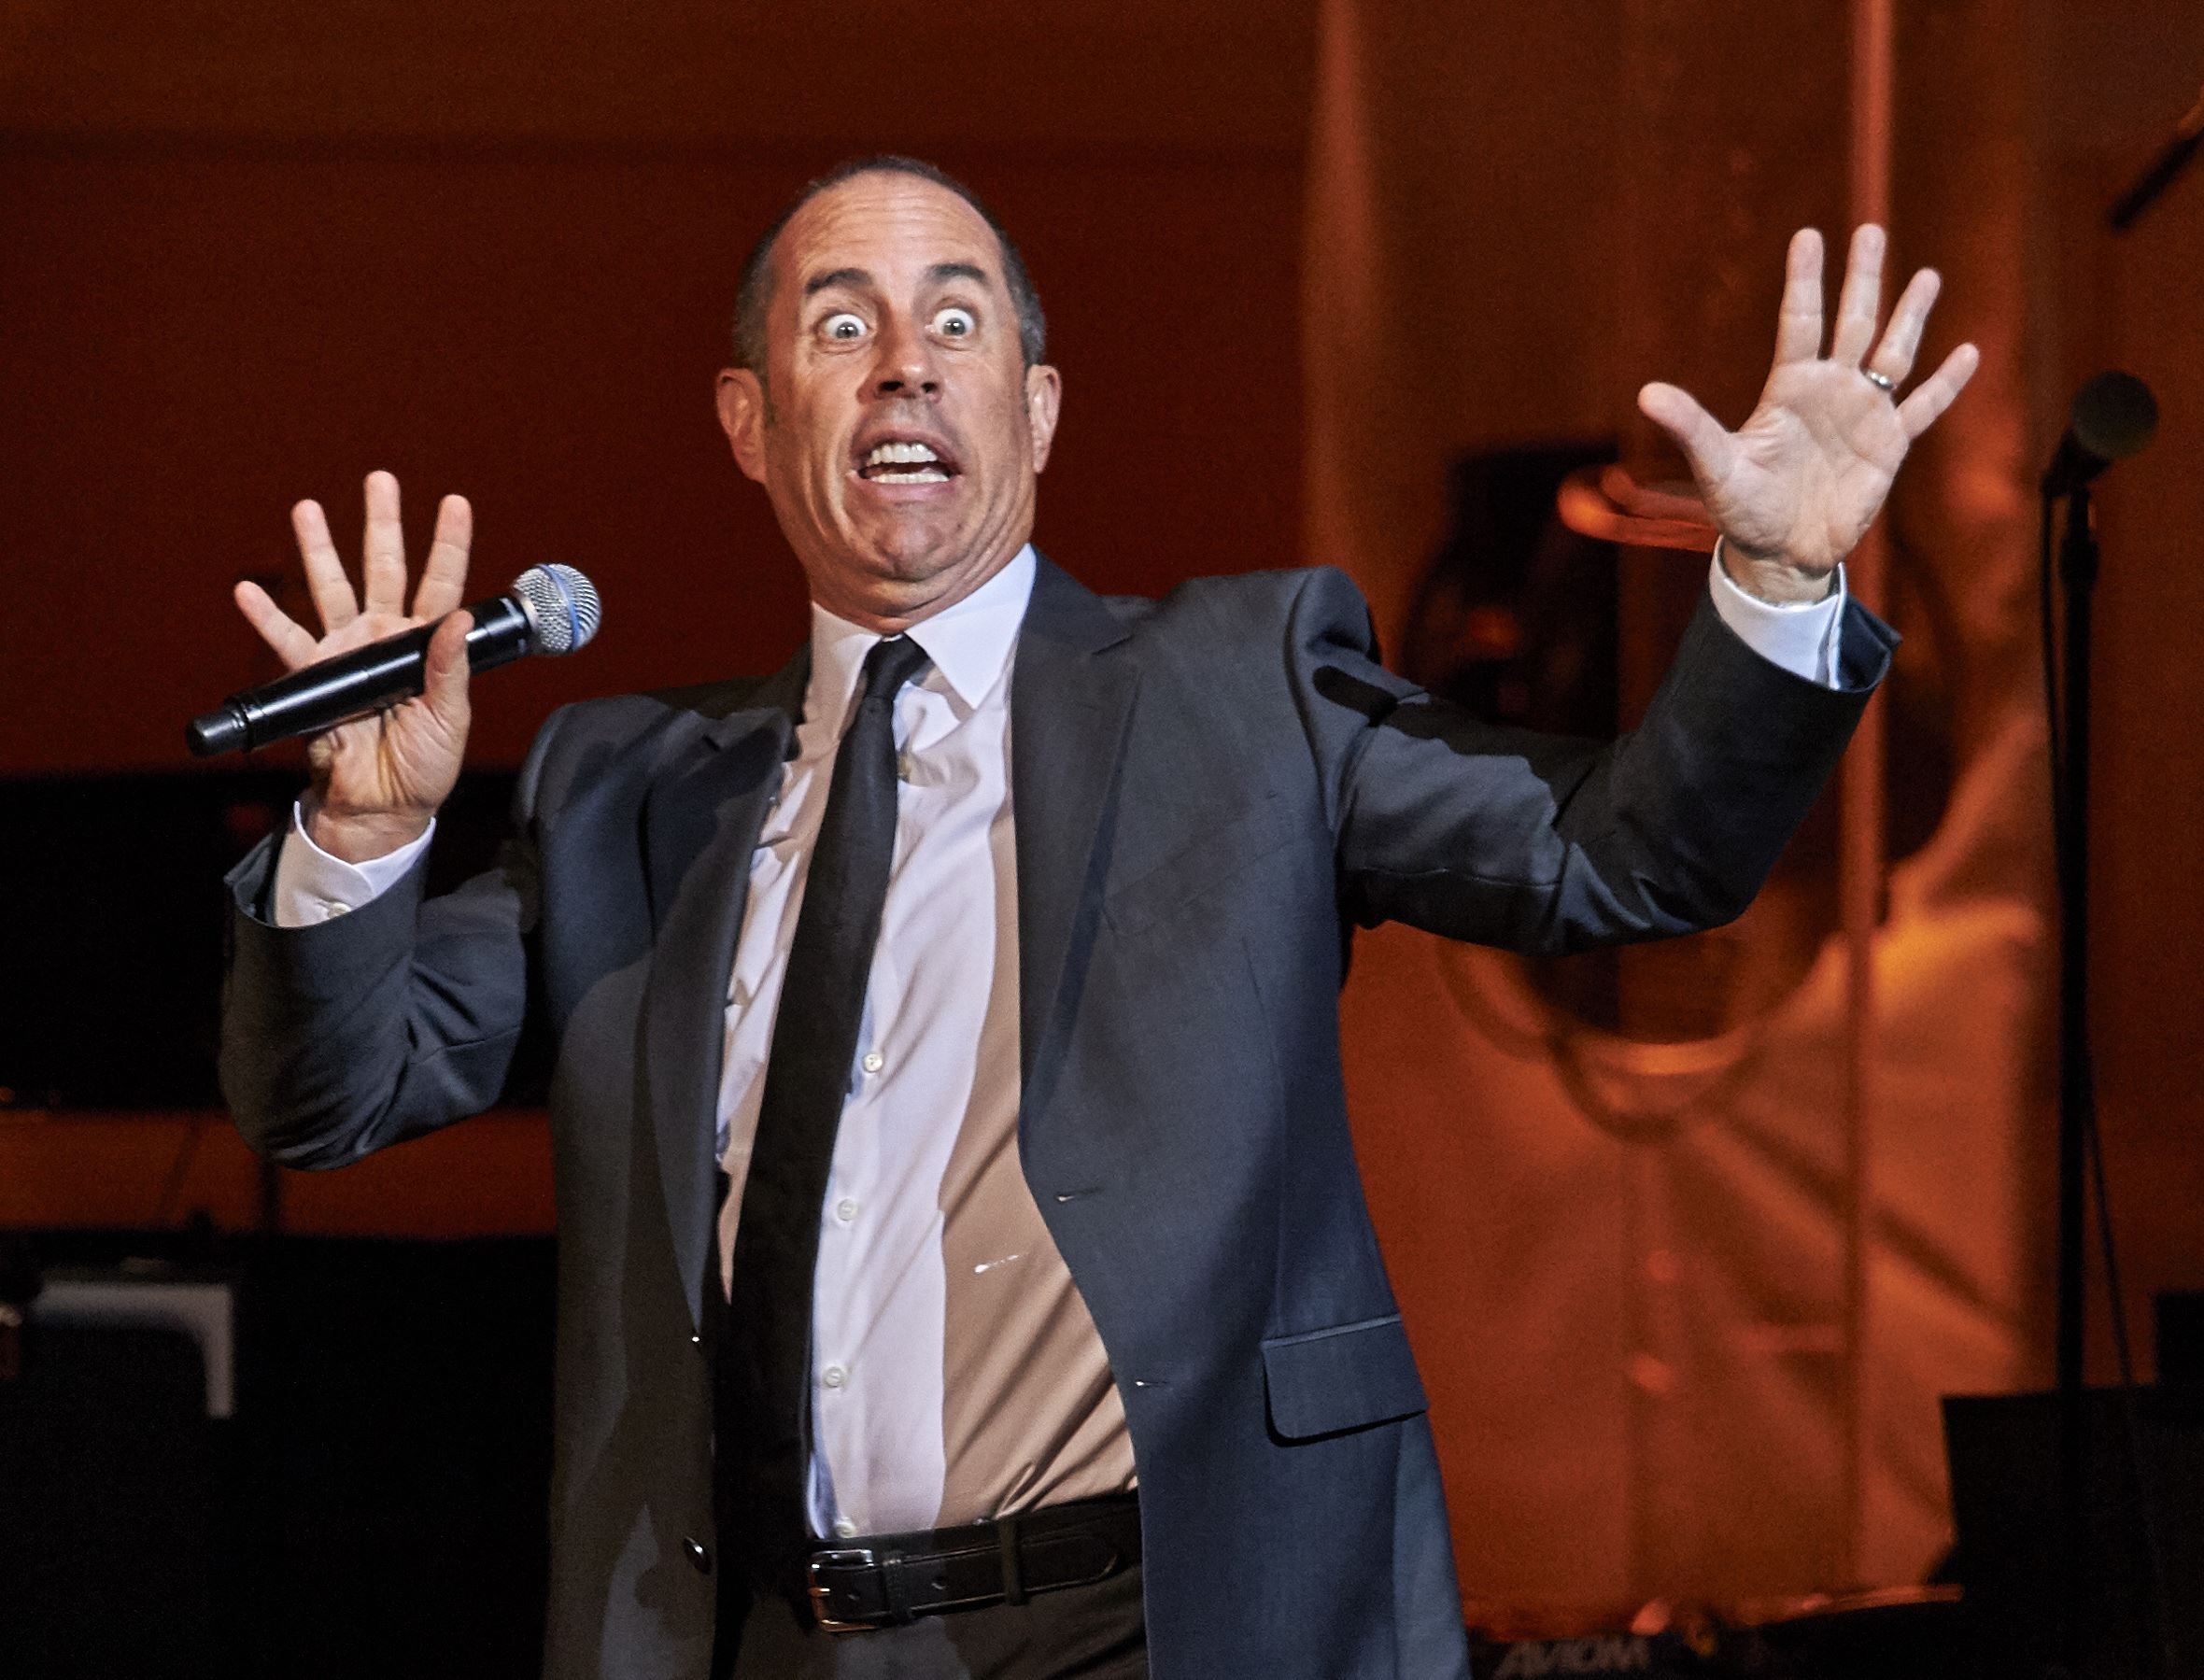 These Are the 10 Highest-Paid Comedians